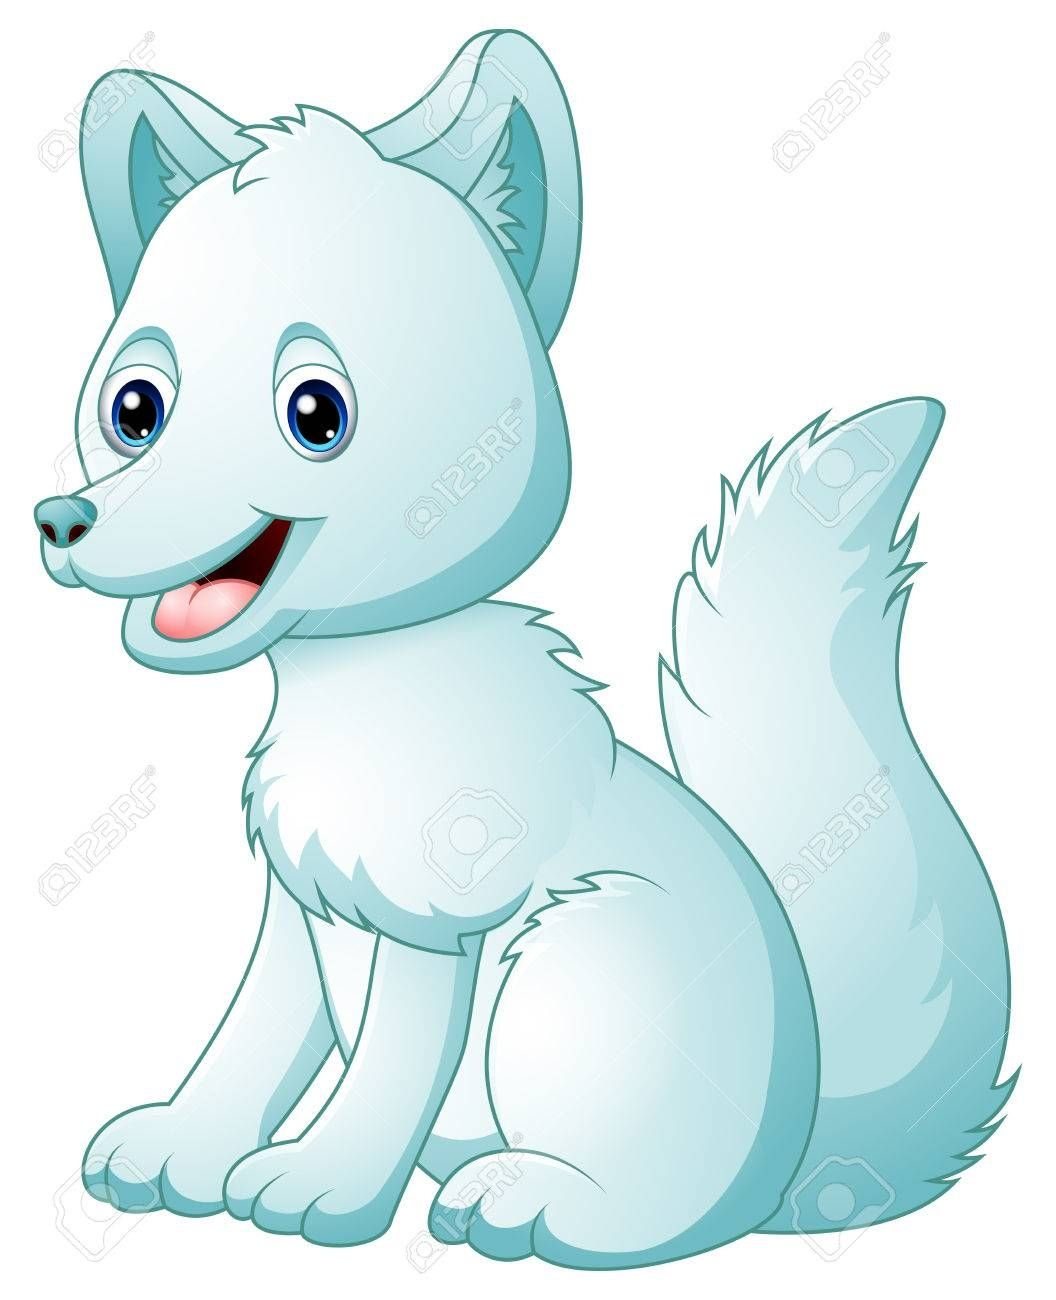 Arctic Fox Clipart Free In 2021 Animal Illustration Kids Fox Coloring Page Arctic Fox